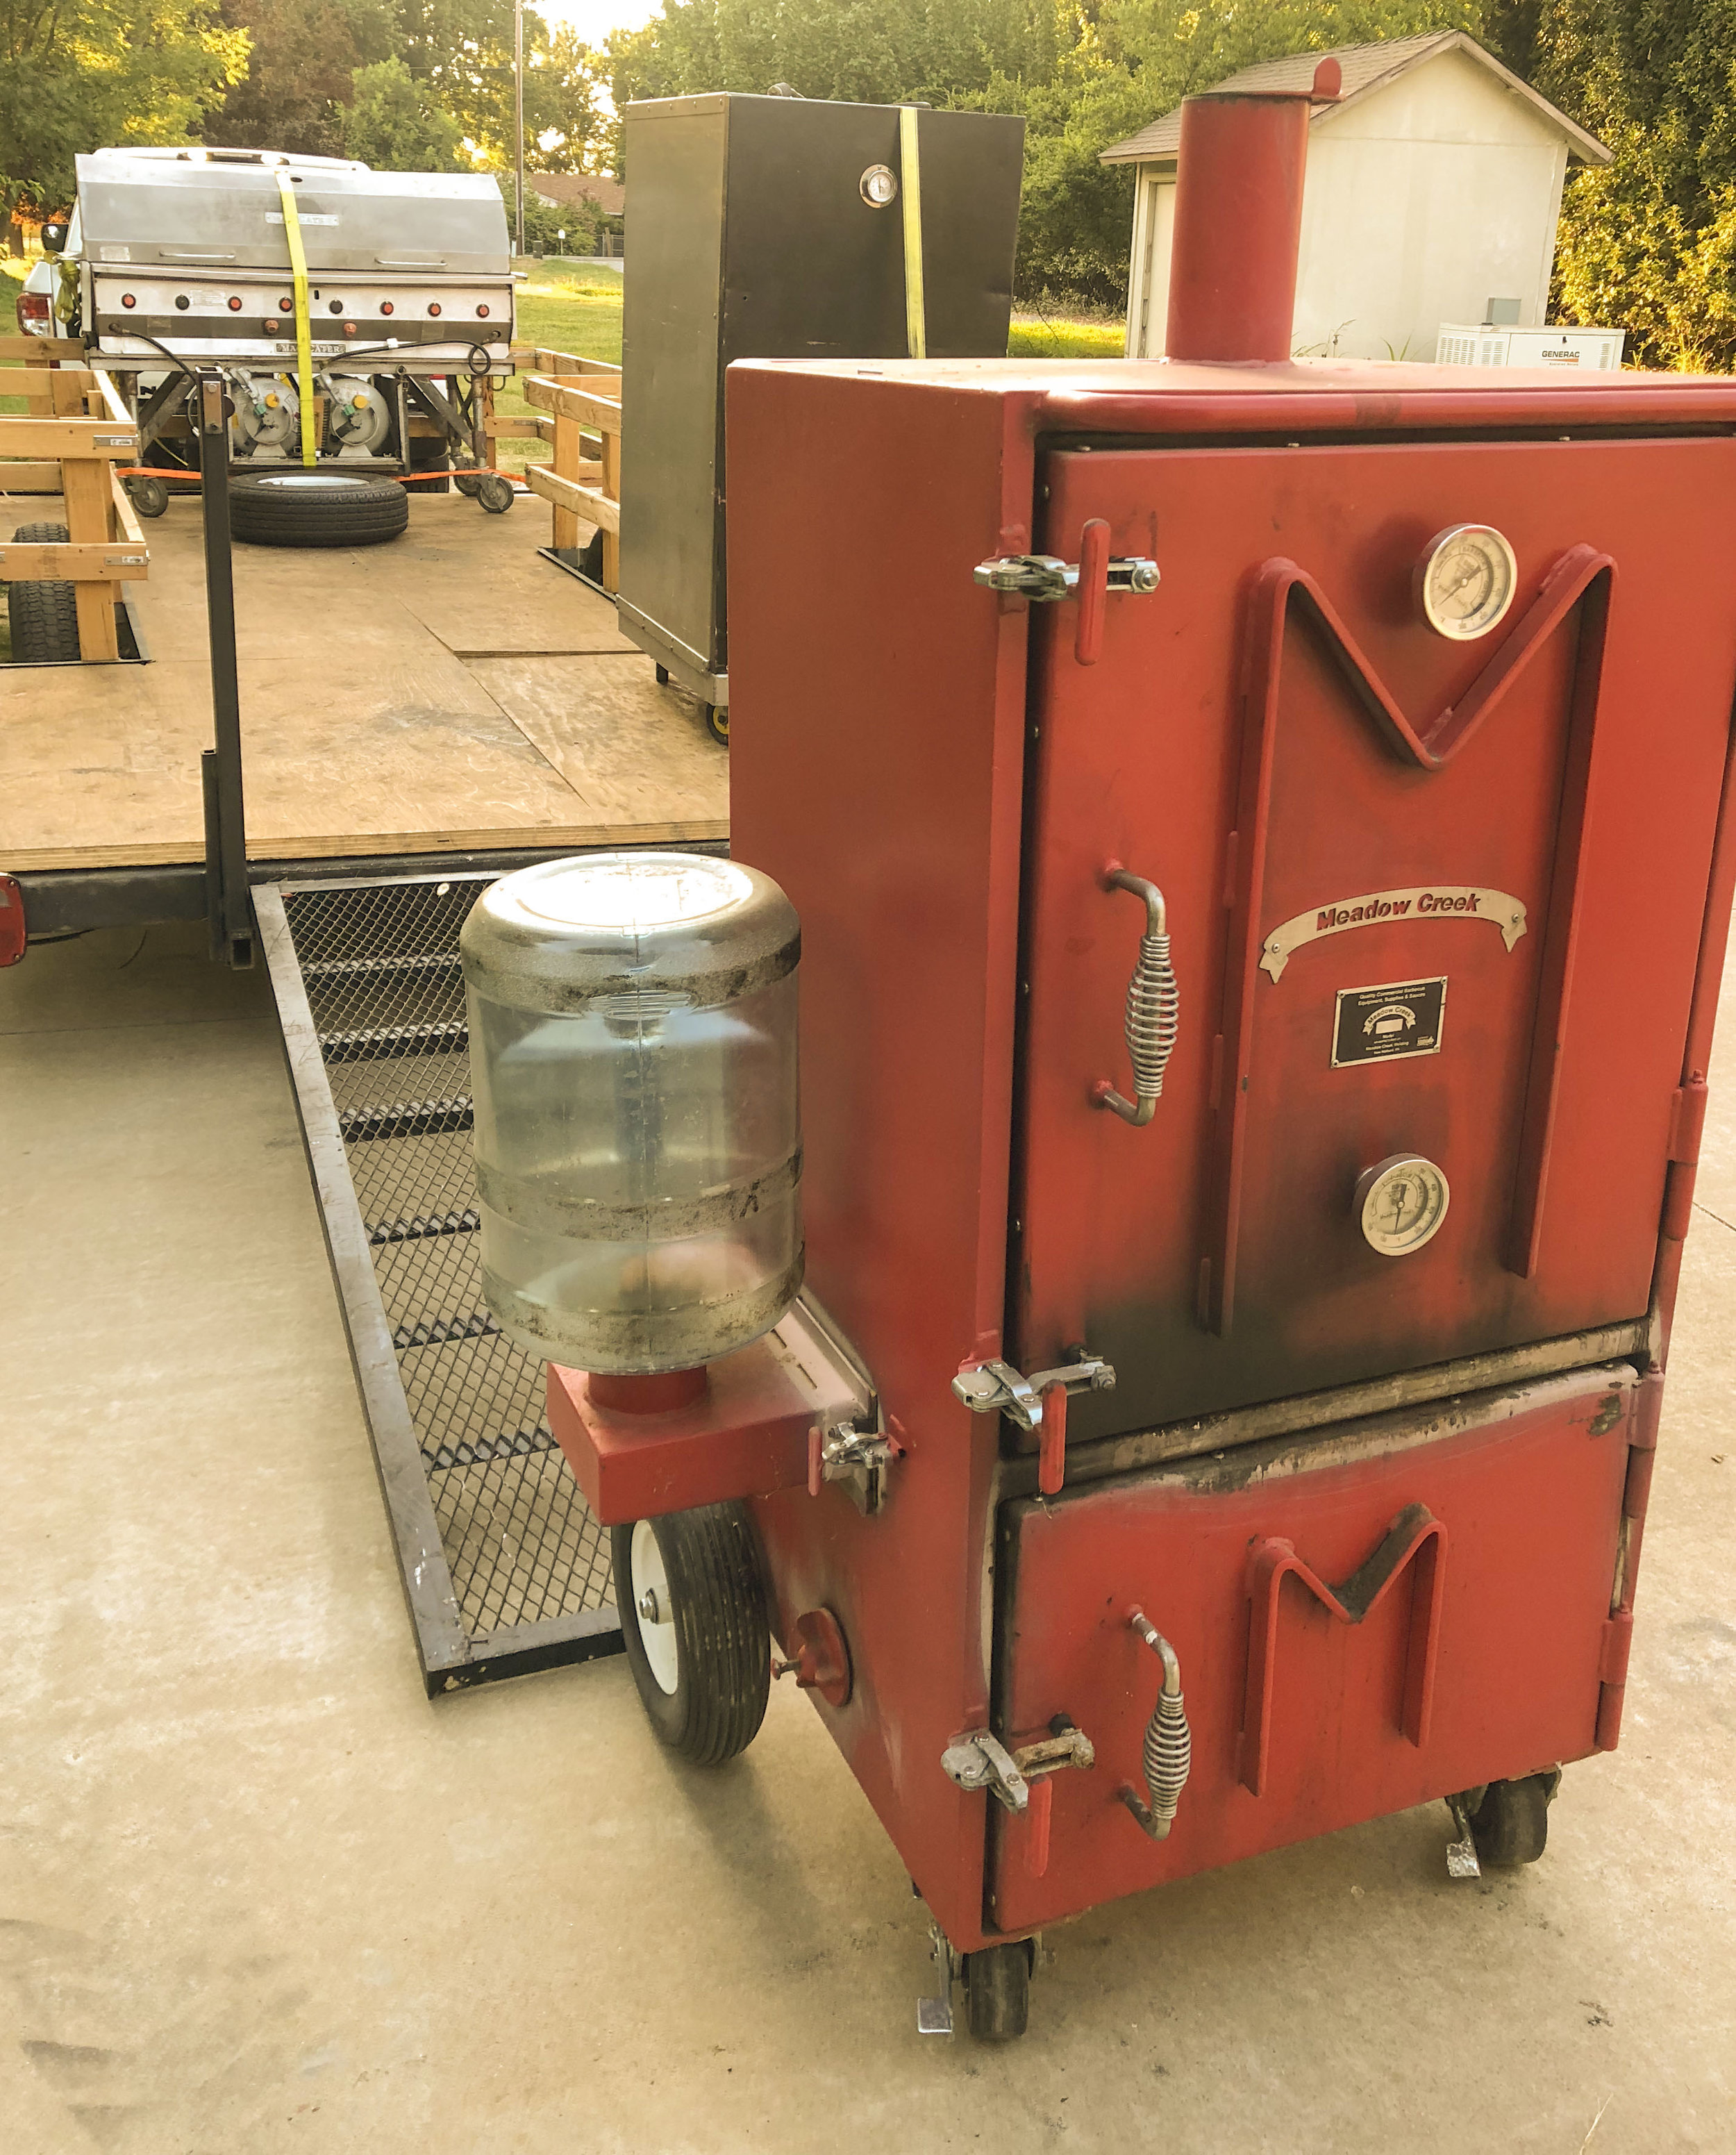 Our meadow creek BX50 smoker is has had many an elbow leaned on it in interest. It's a great unit!